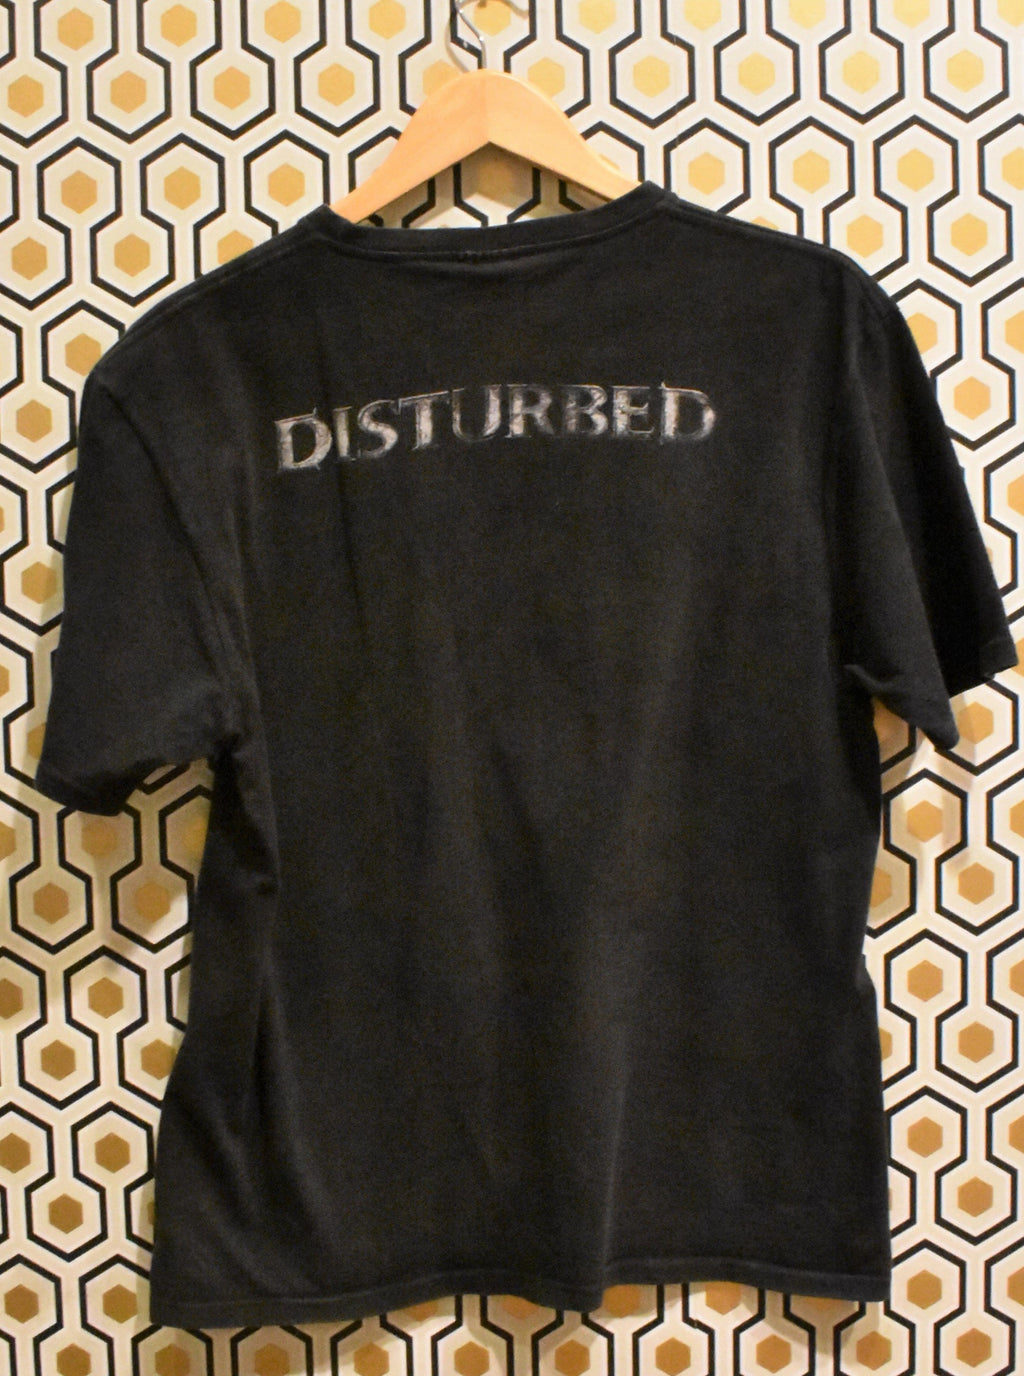 Disturbed Band Tee